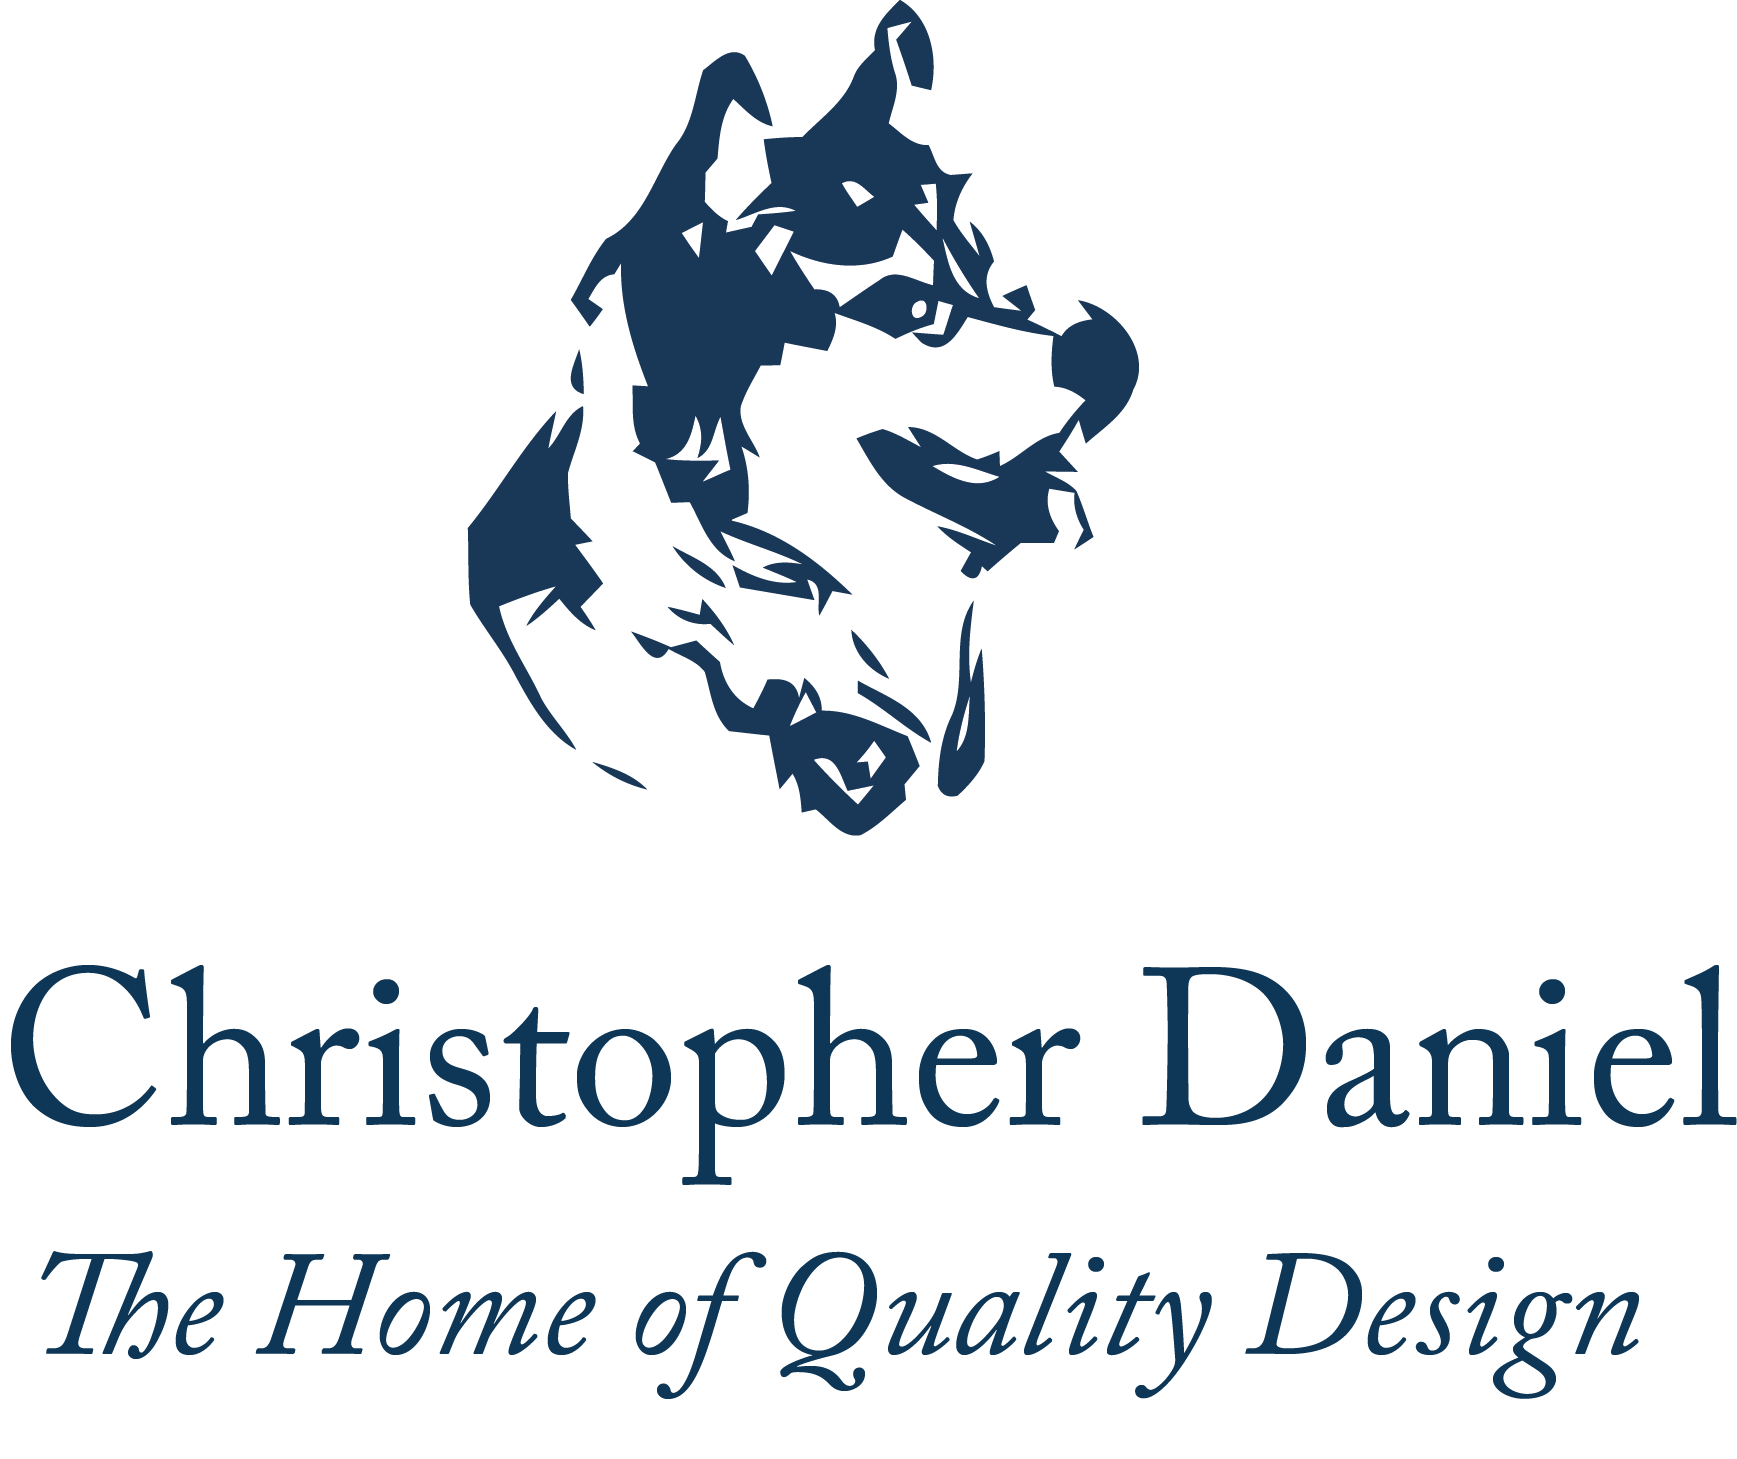 Christopher Daniel